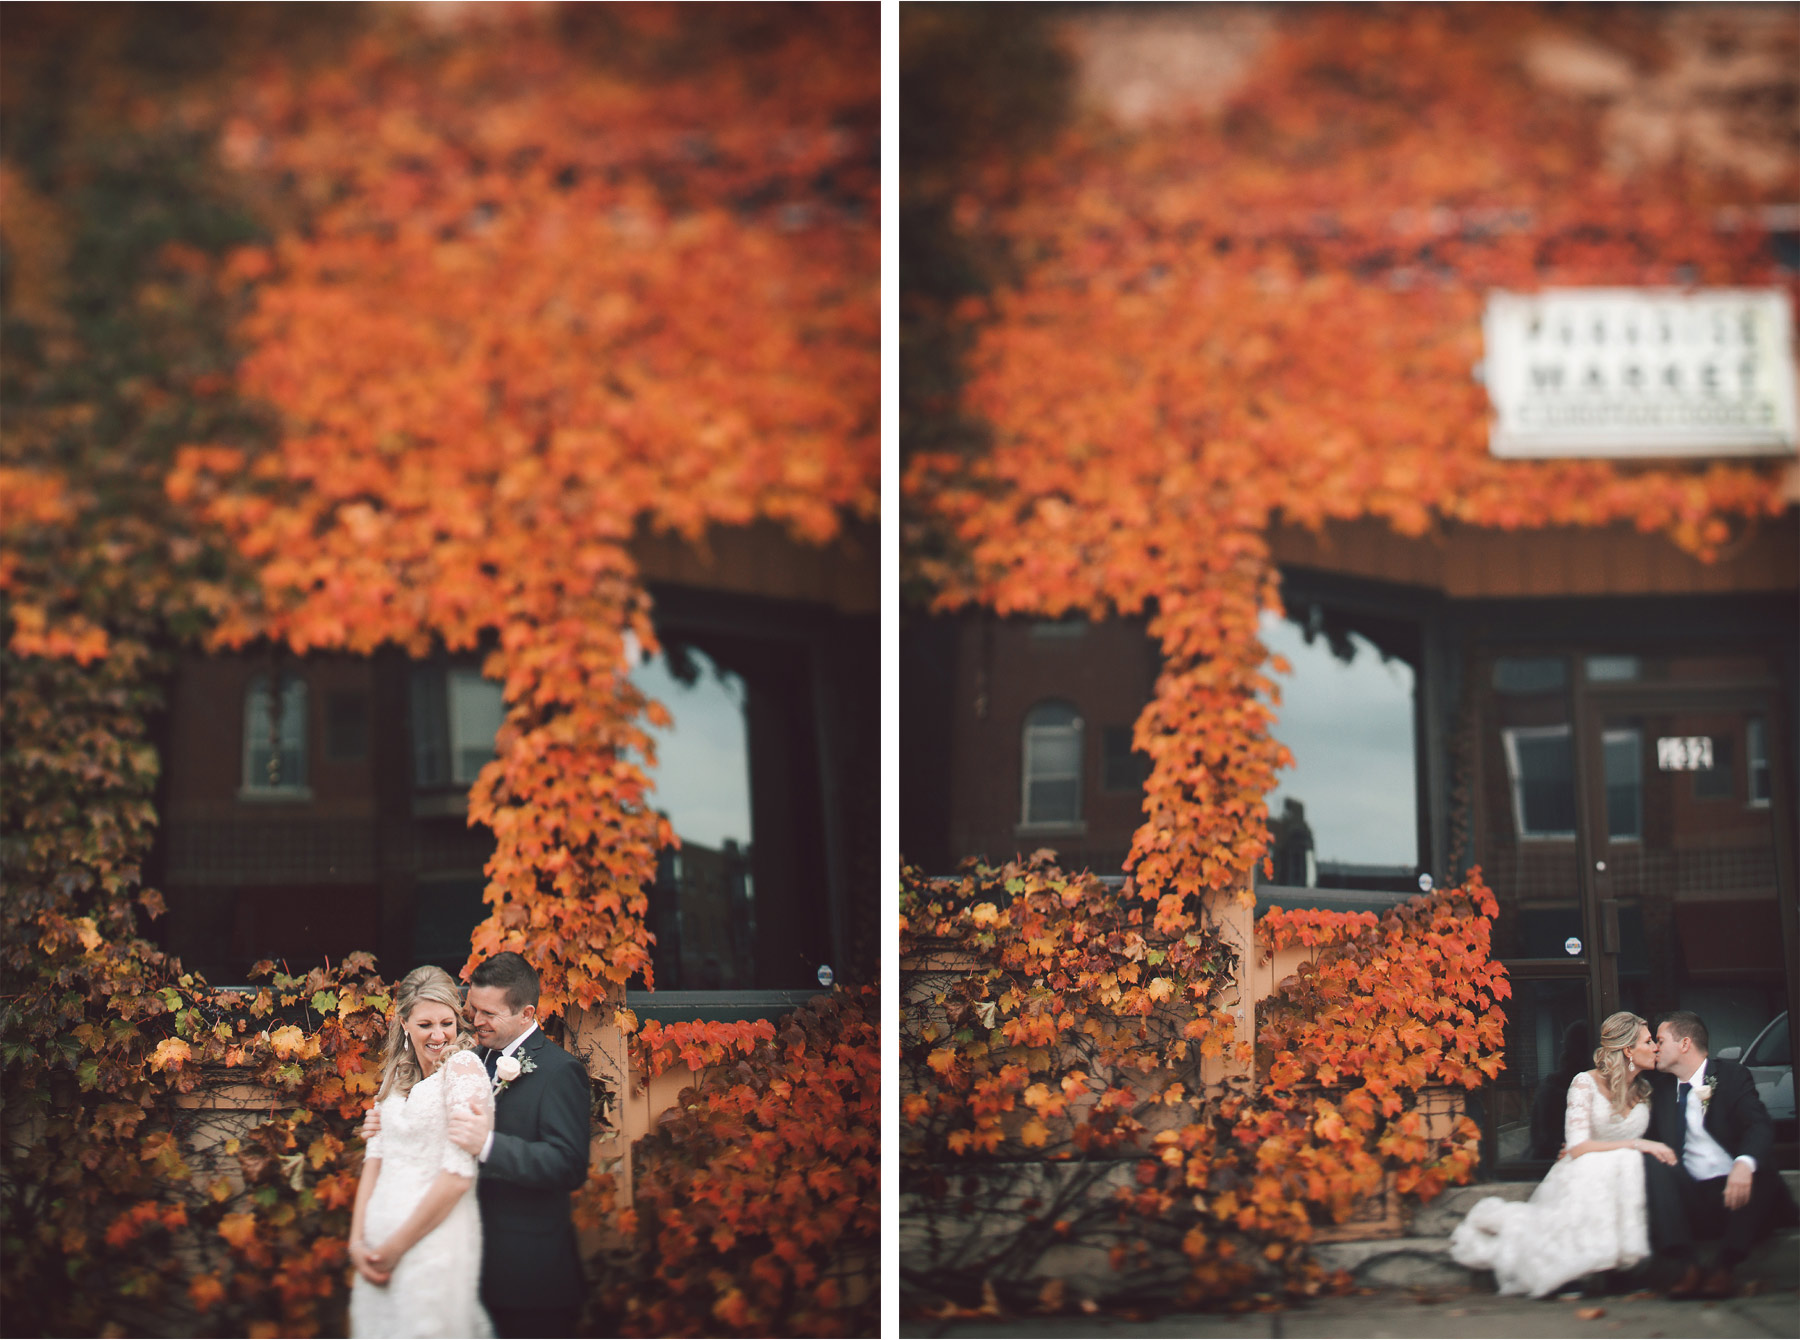 12-Shakopee-Minnesota-Wedding-Photography-by-Vick-Photography-Autumn-Fall-Leaves-Colors-Amber-and-Justin.jpg